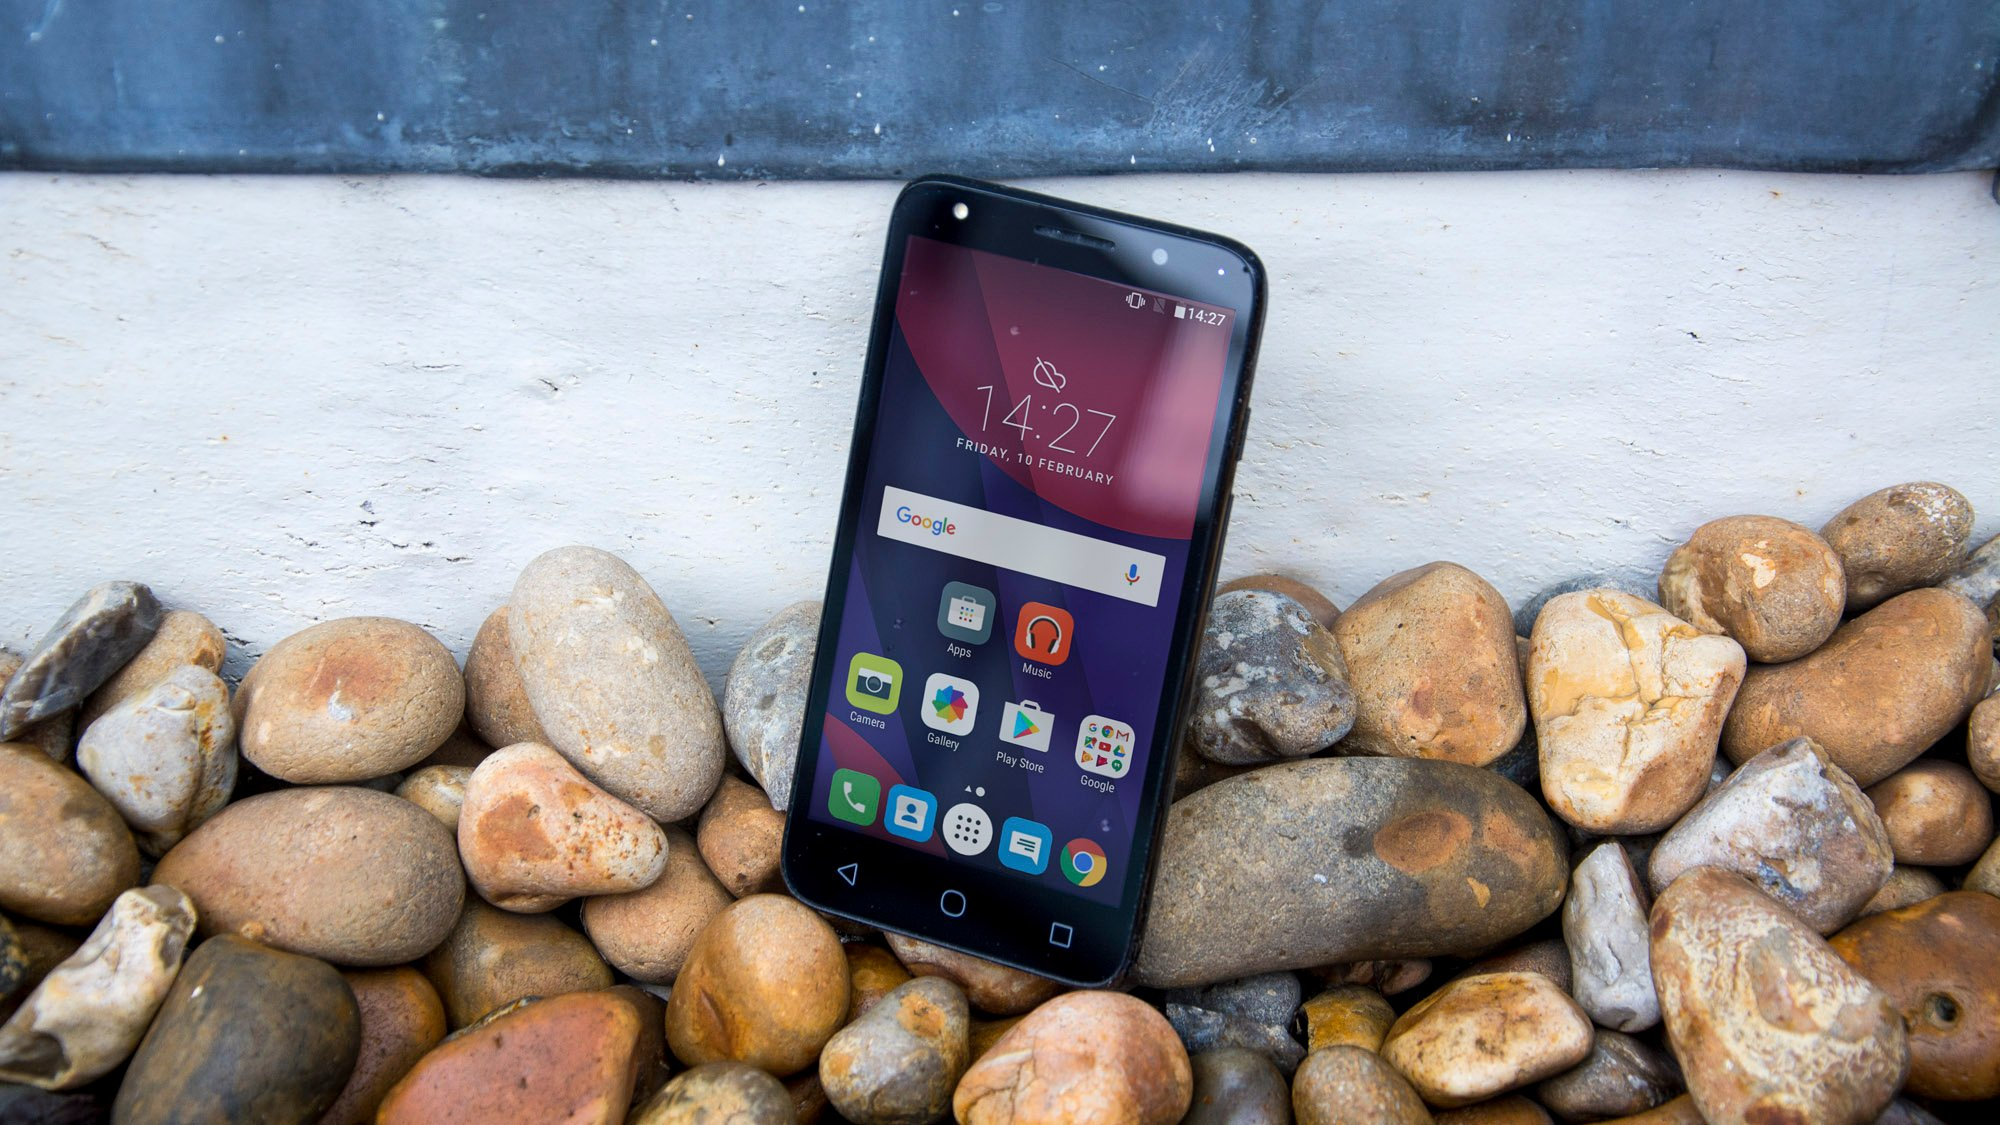 Alcatel Pixi 4 (5) review: How good can a £59 smartphone be